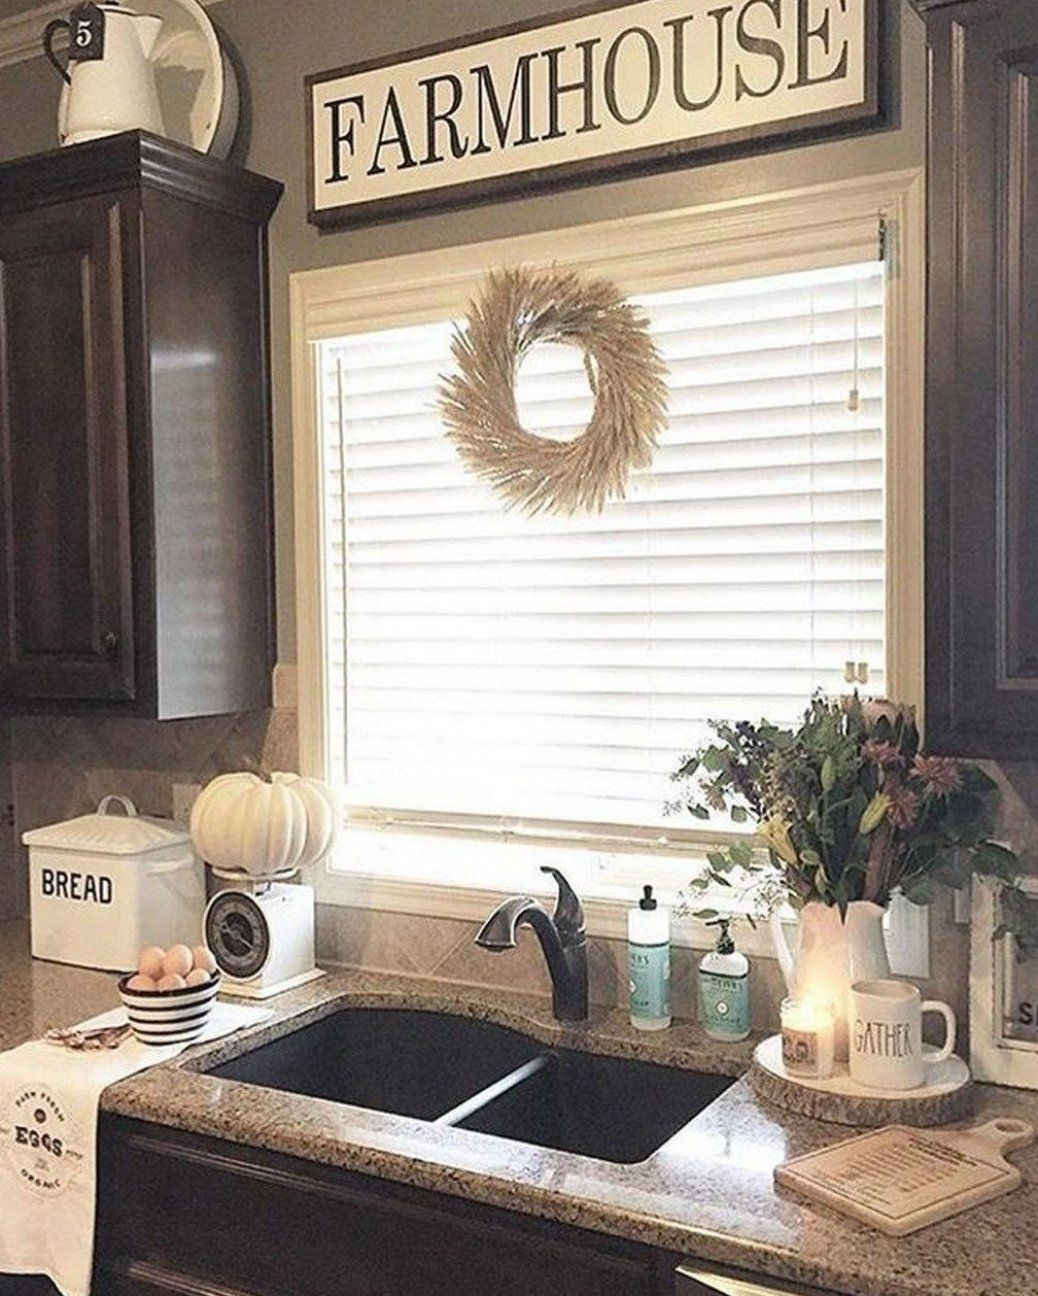 122 Cheap Easy And Simple Diy Rustic Home Decor Ideas 46 Homedecor Homedecorideas Homedecor Affordable Farmhouse Kitchen Easy Home Decor Rustic House